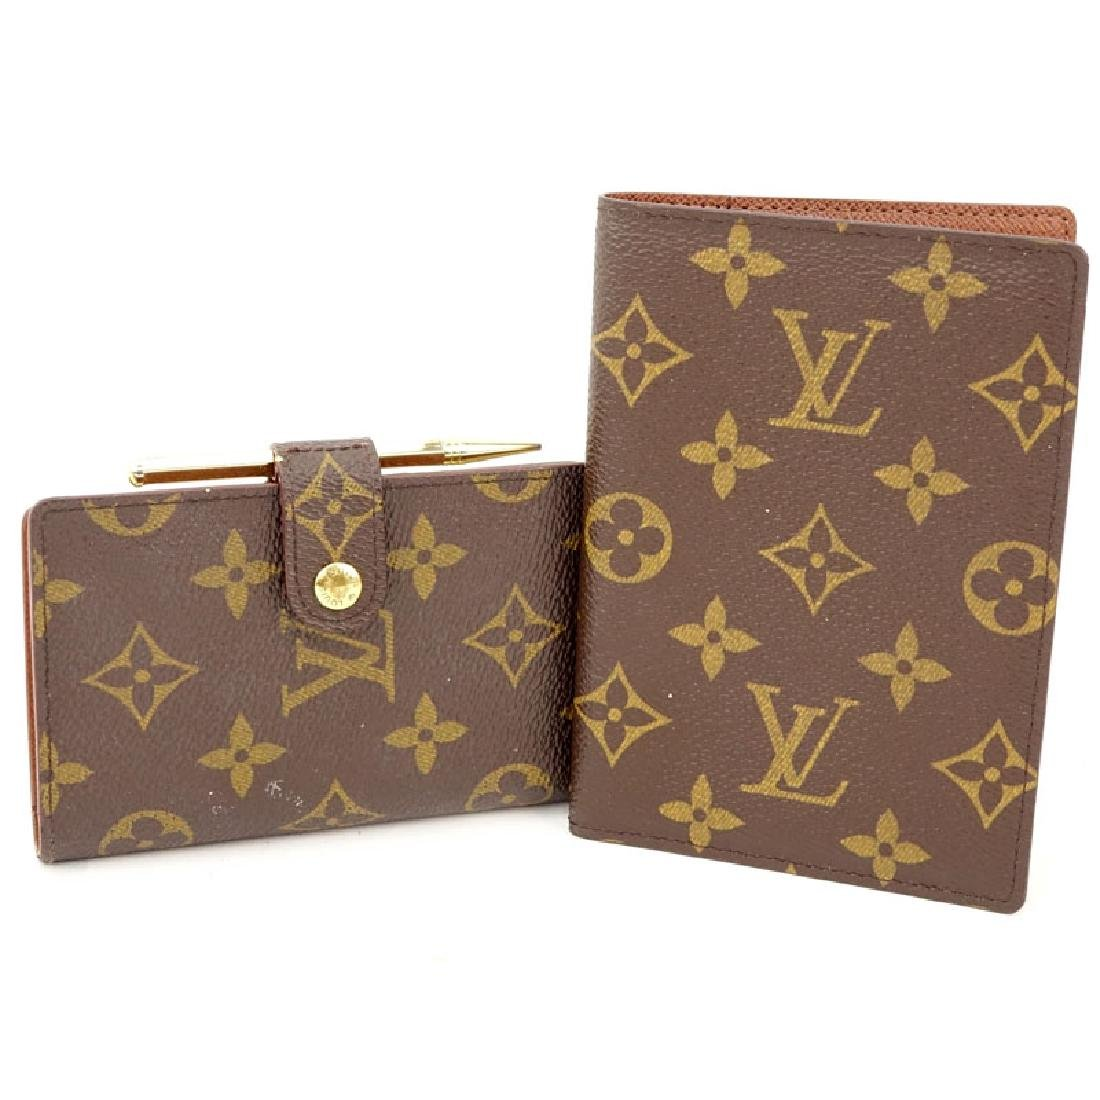 Two Pieces - Louis Vuitton Monogram Address Phone &